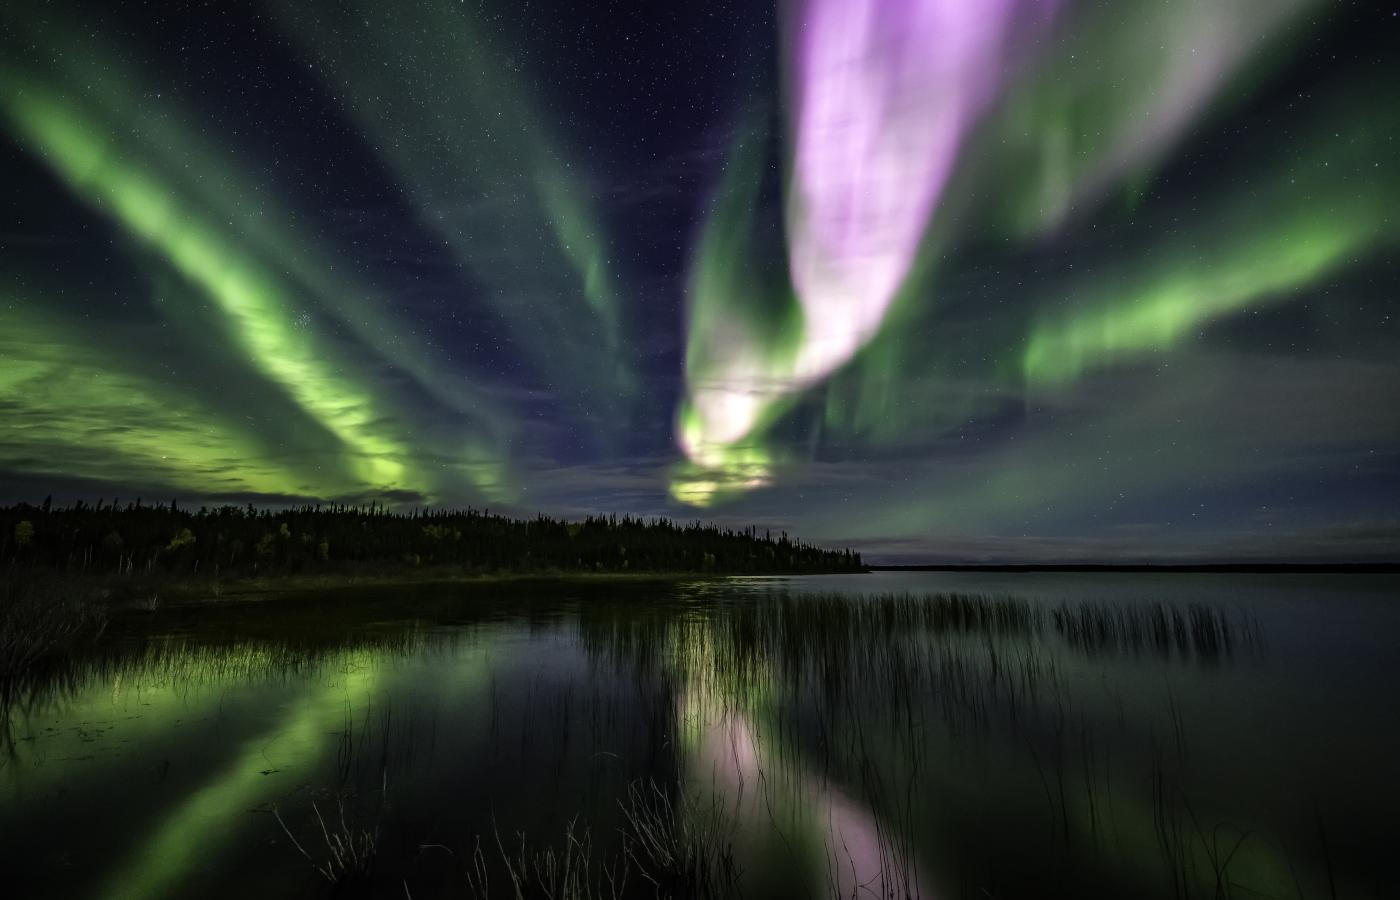 Green, pink and purple aurora dances across the night sky over a lake in the Northwest territories